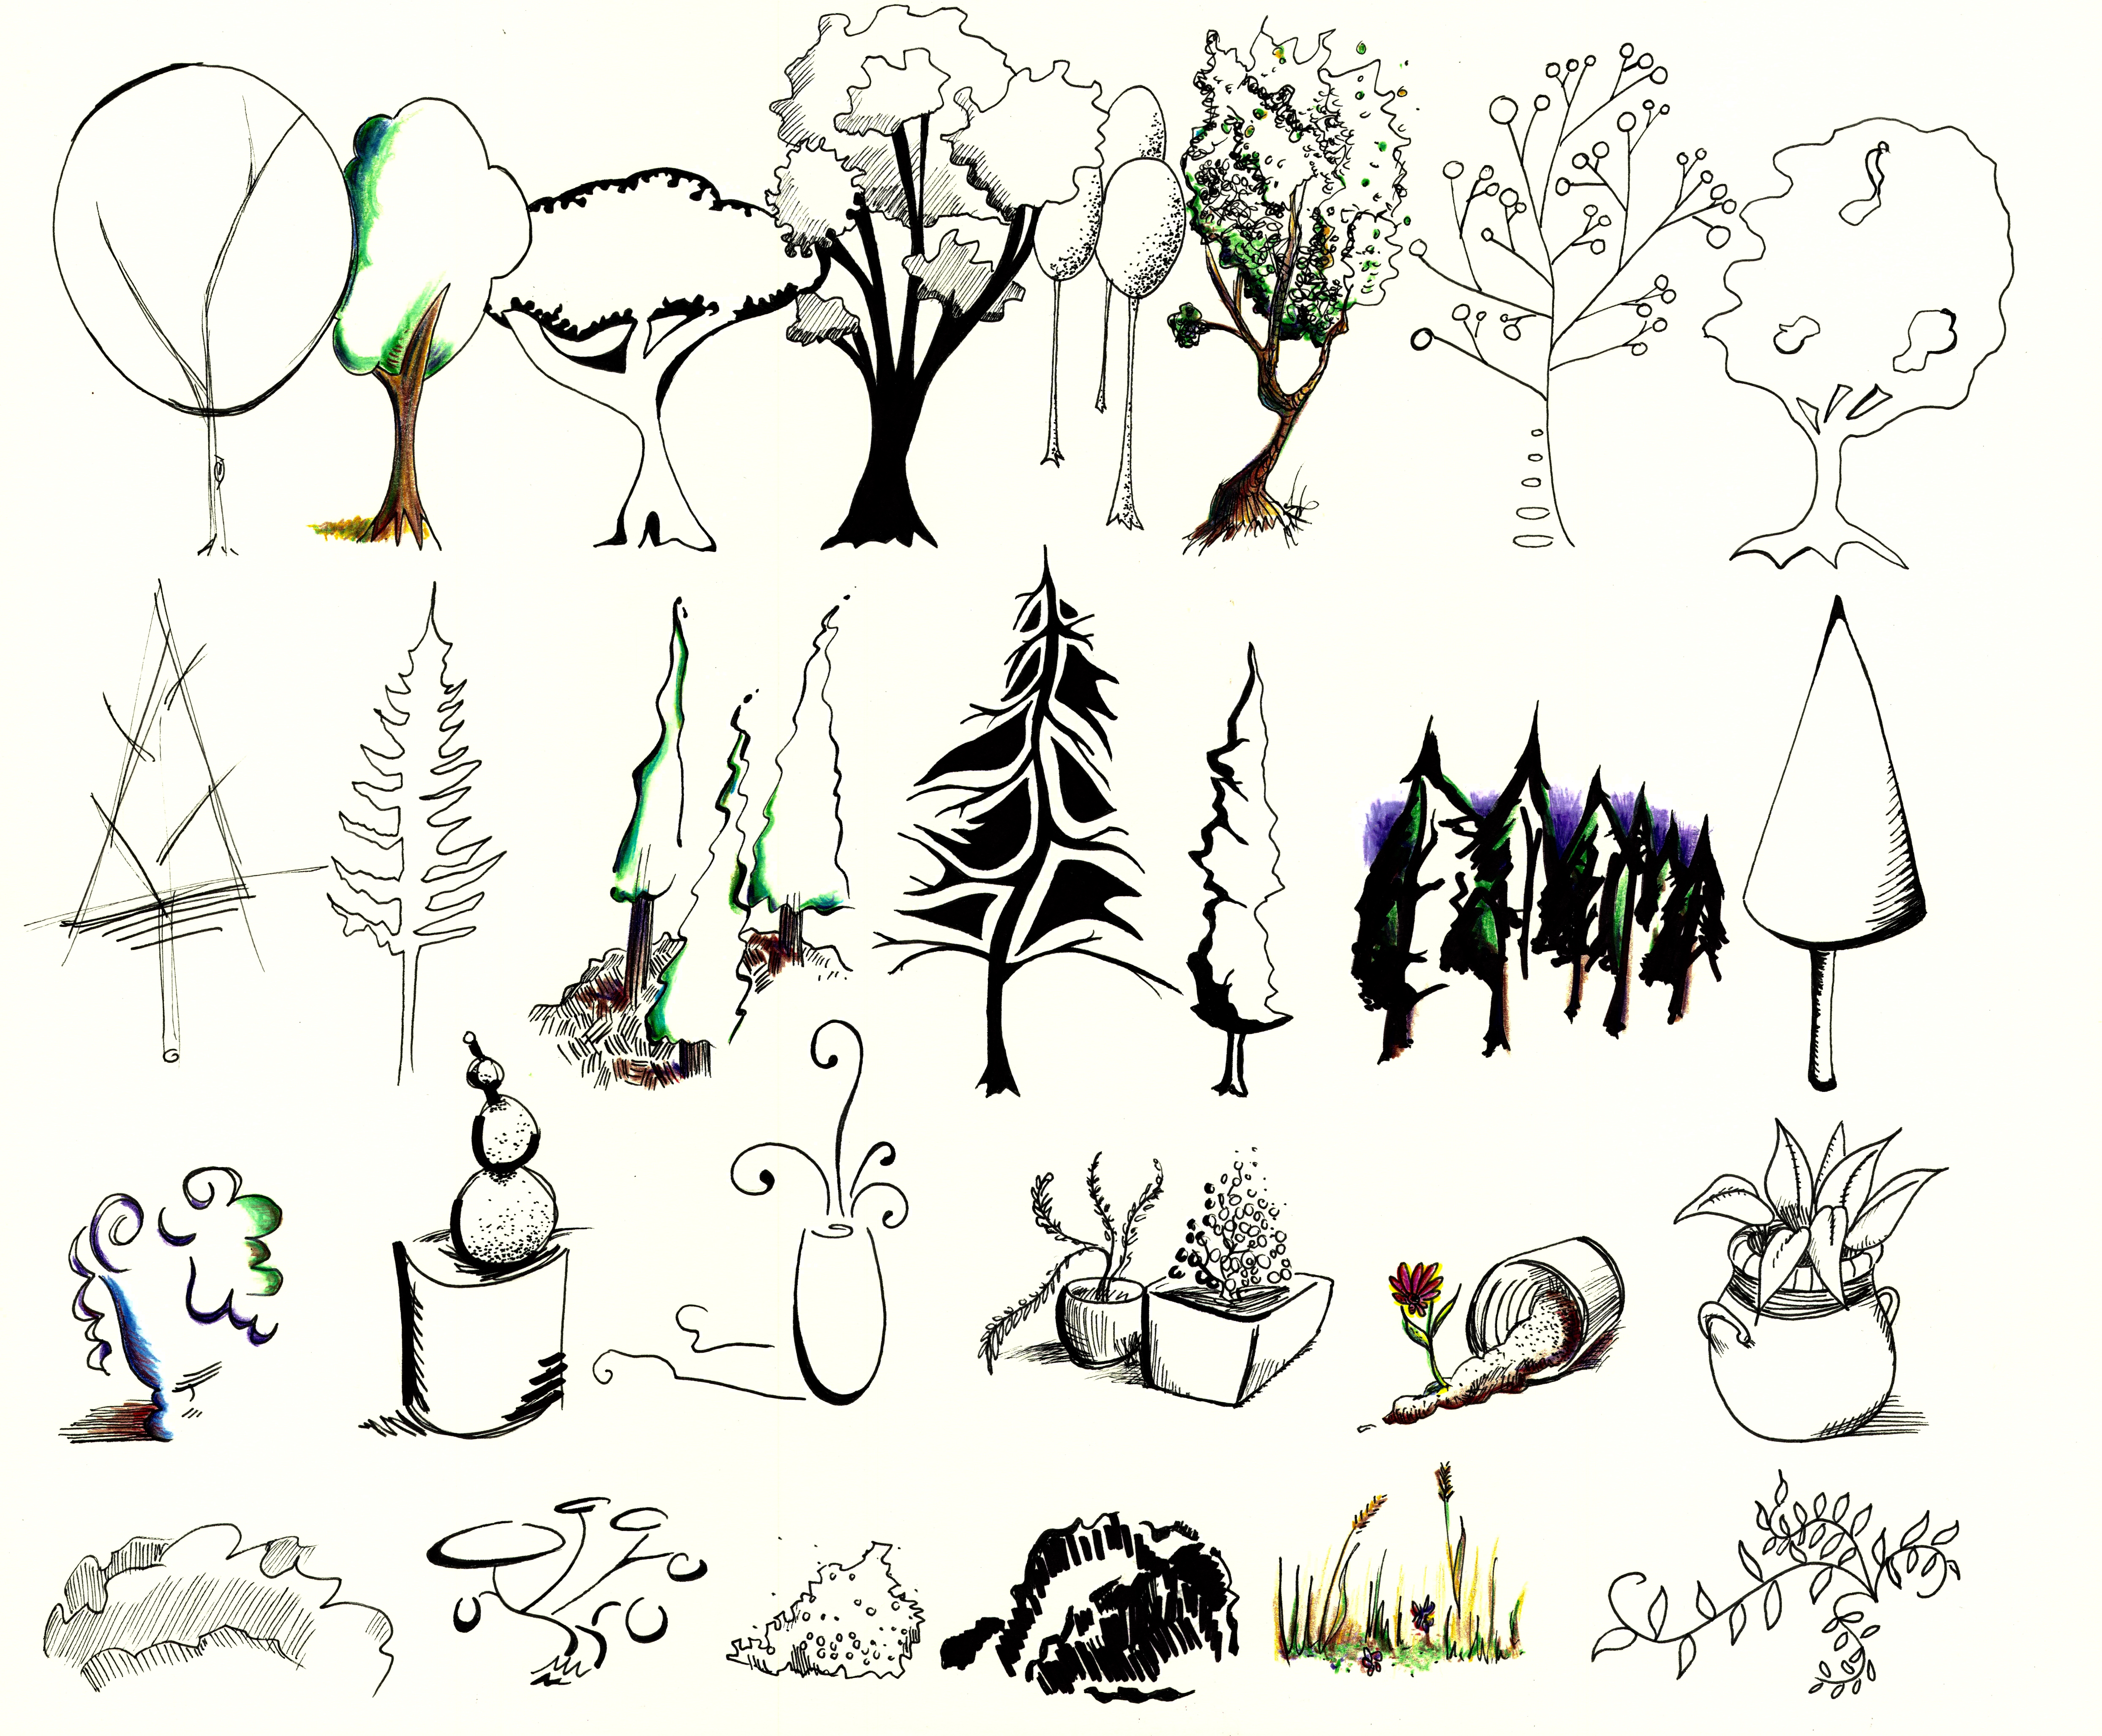 Pen and ink. 2008.